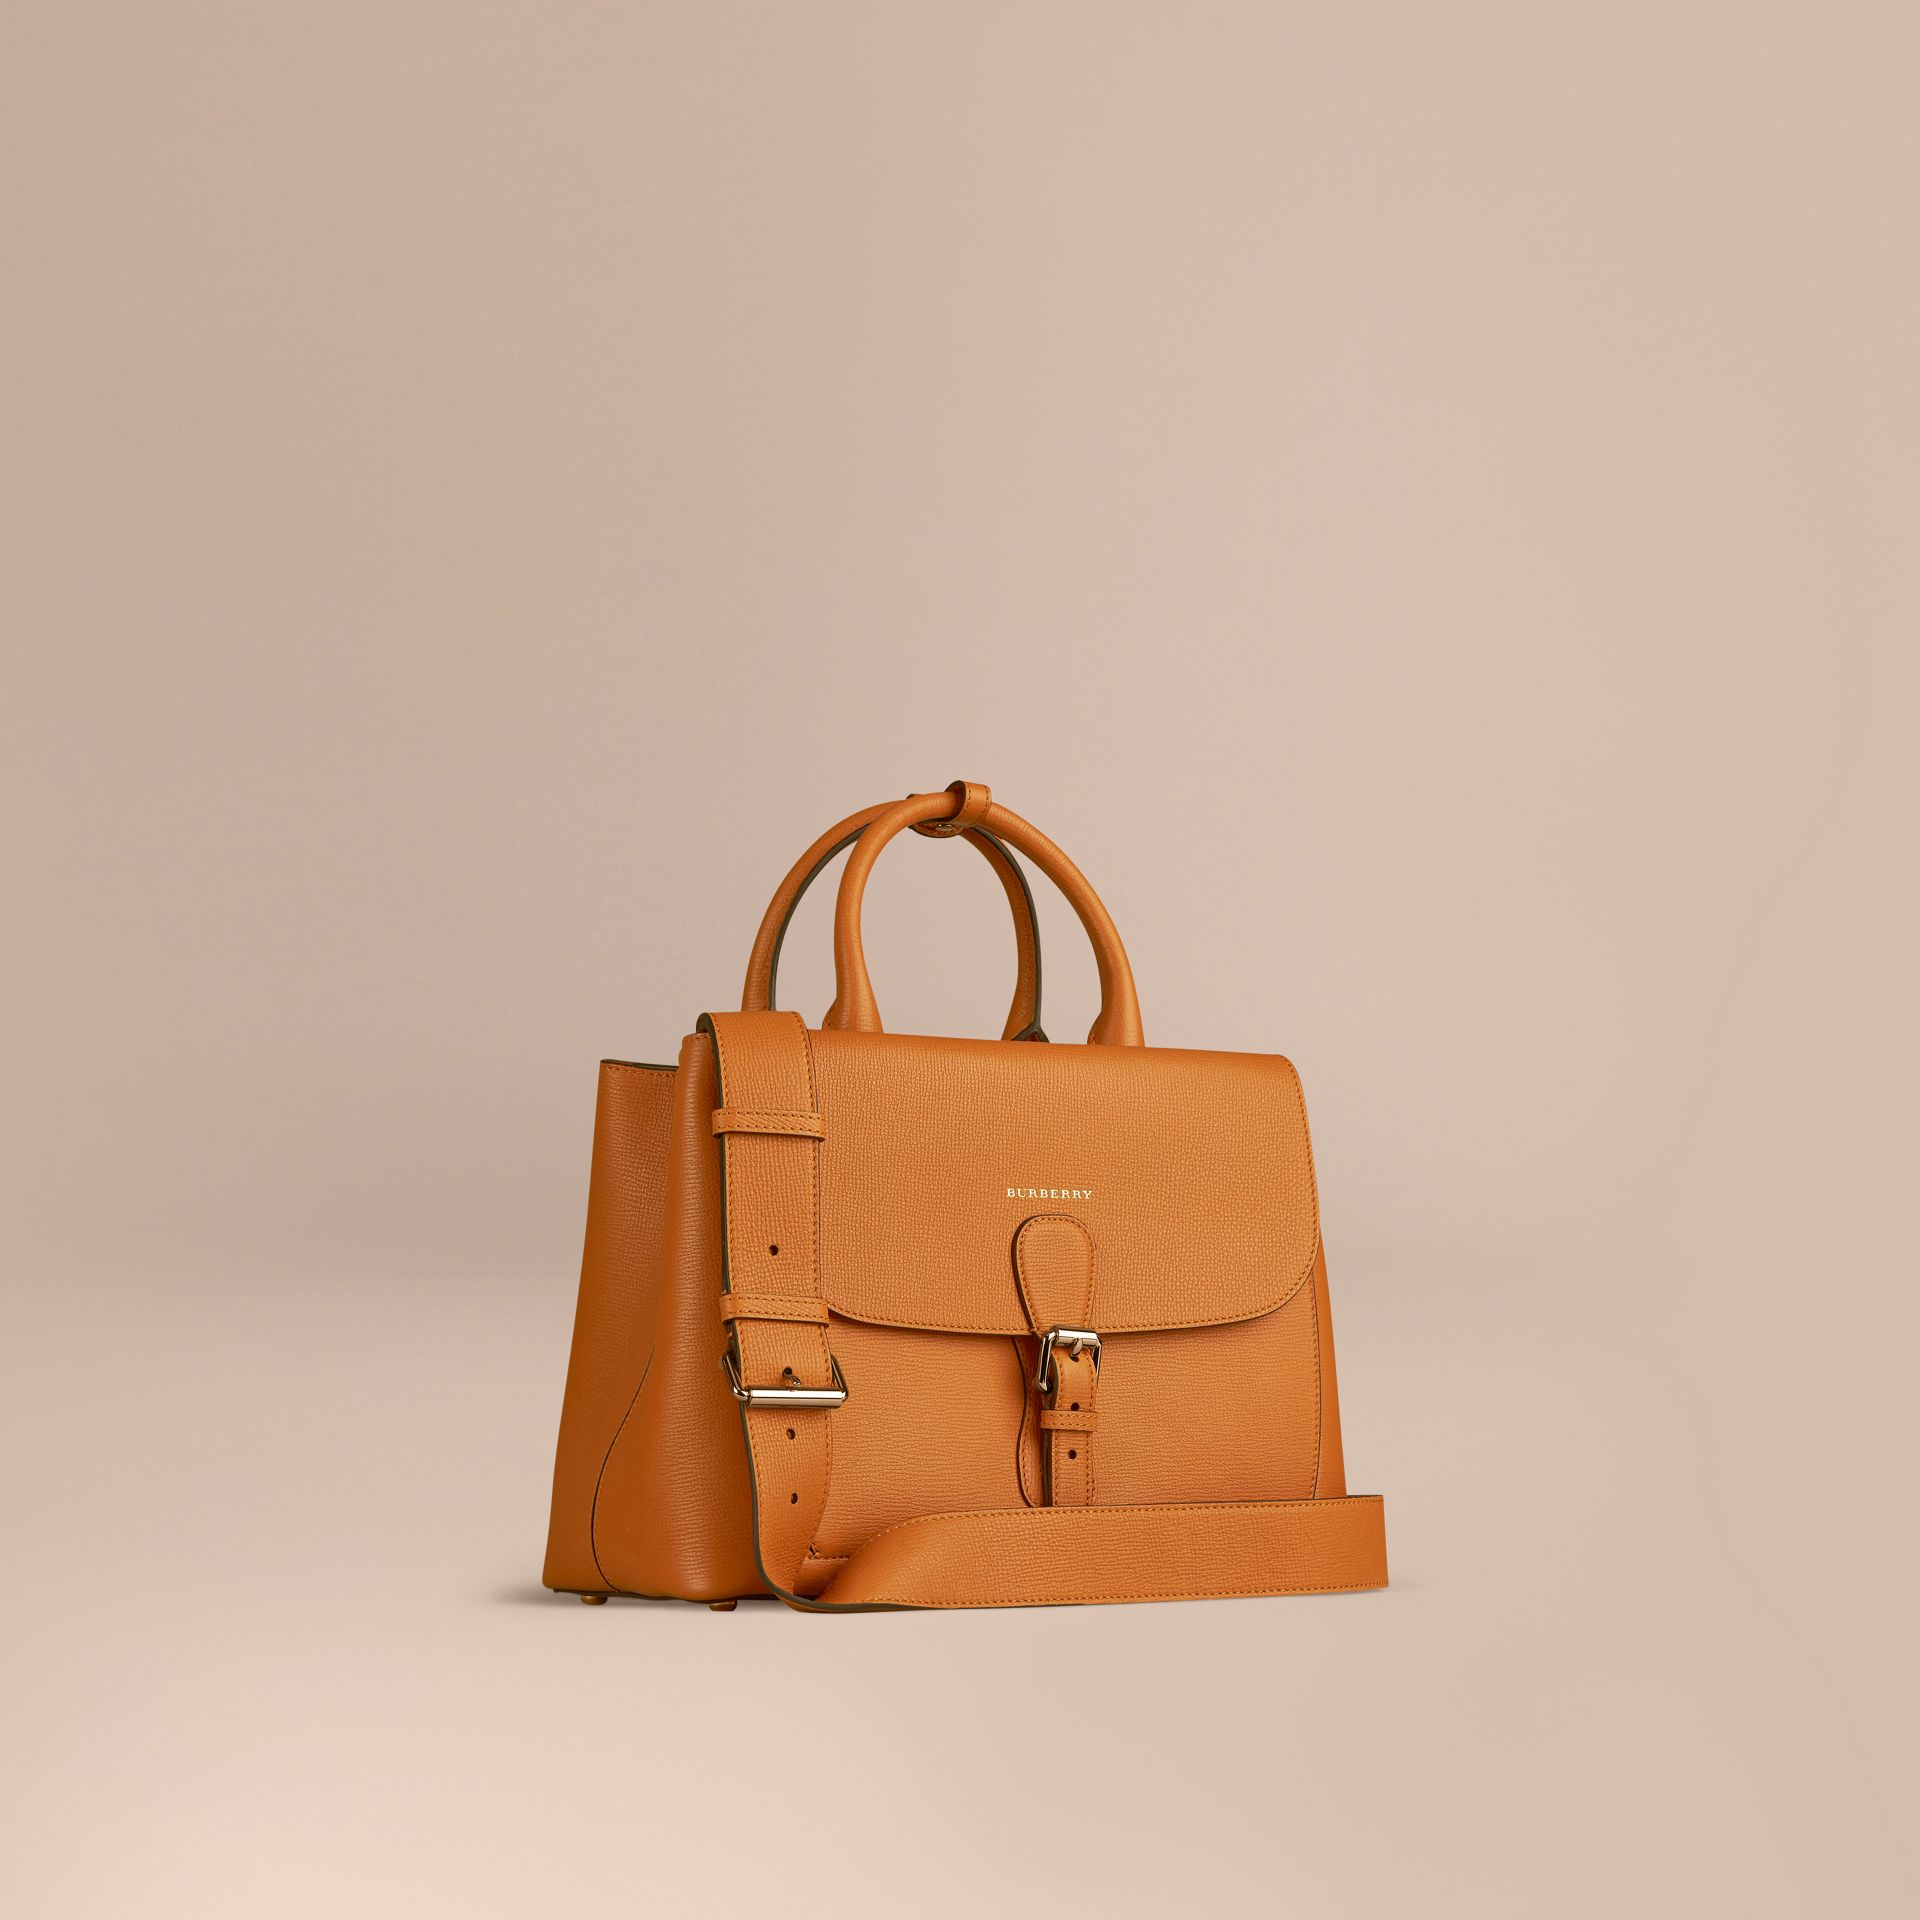 Cognac The Medium Saddle Bag in Grainy Bonded Leather Cognac - gallery image 1